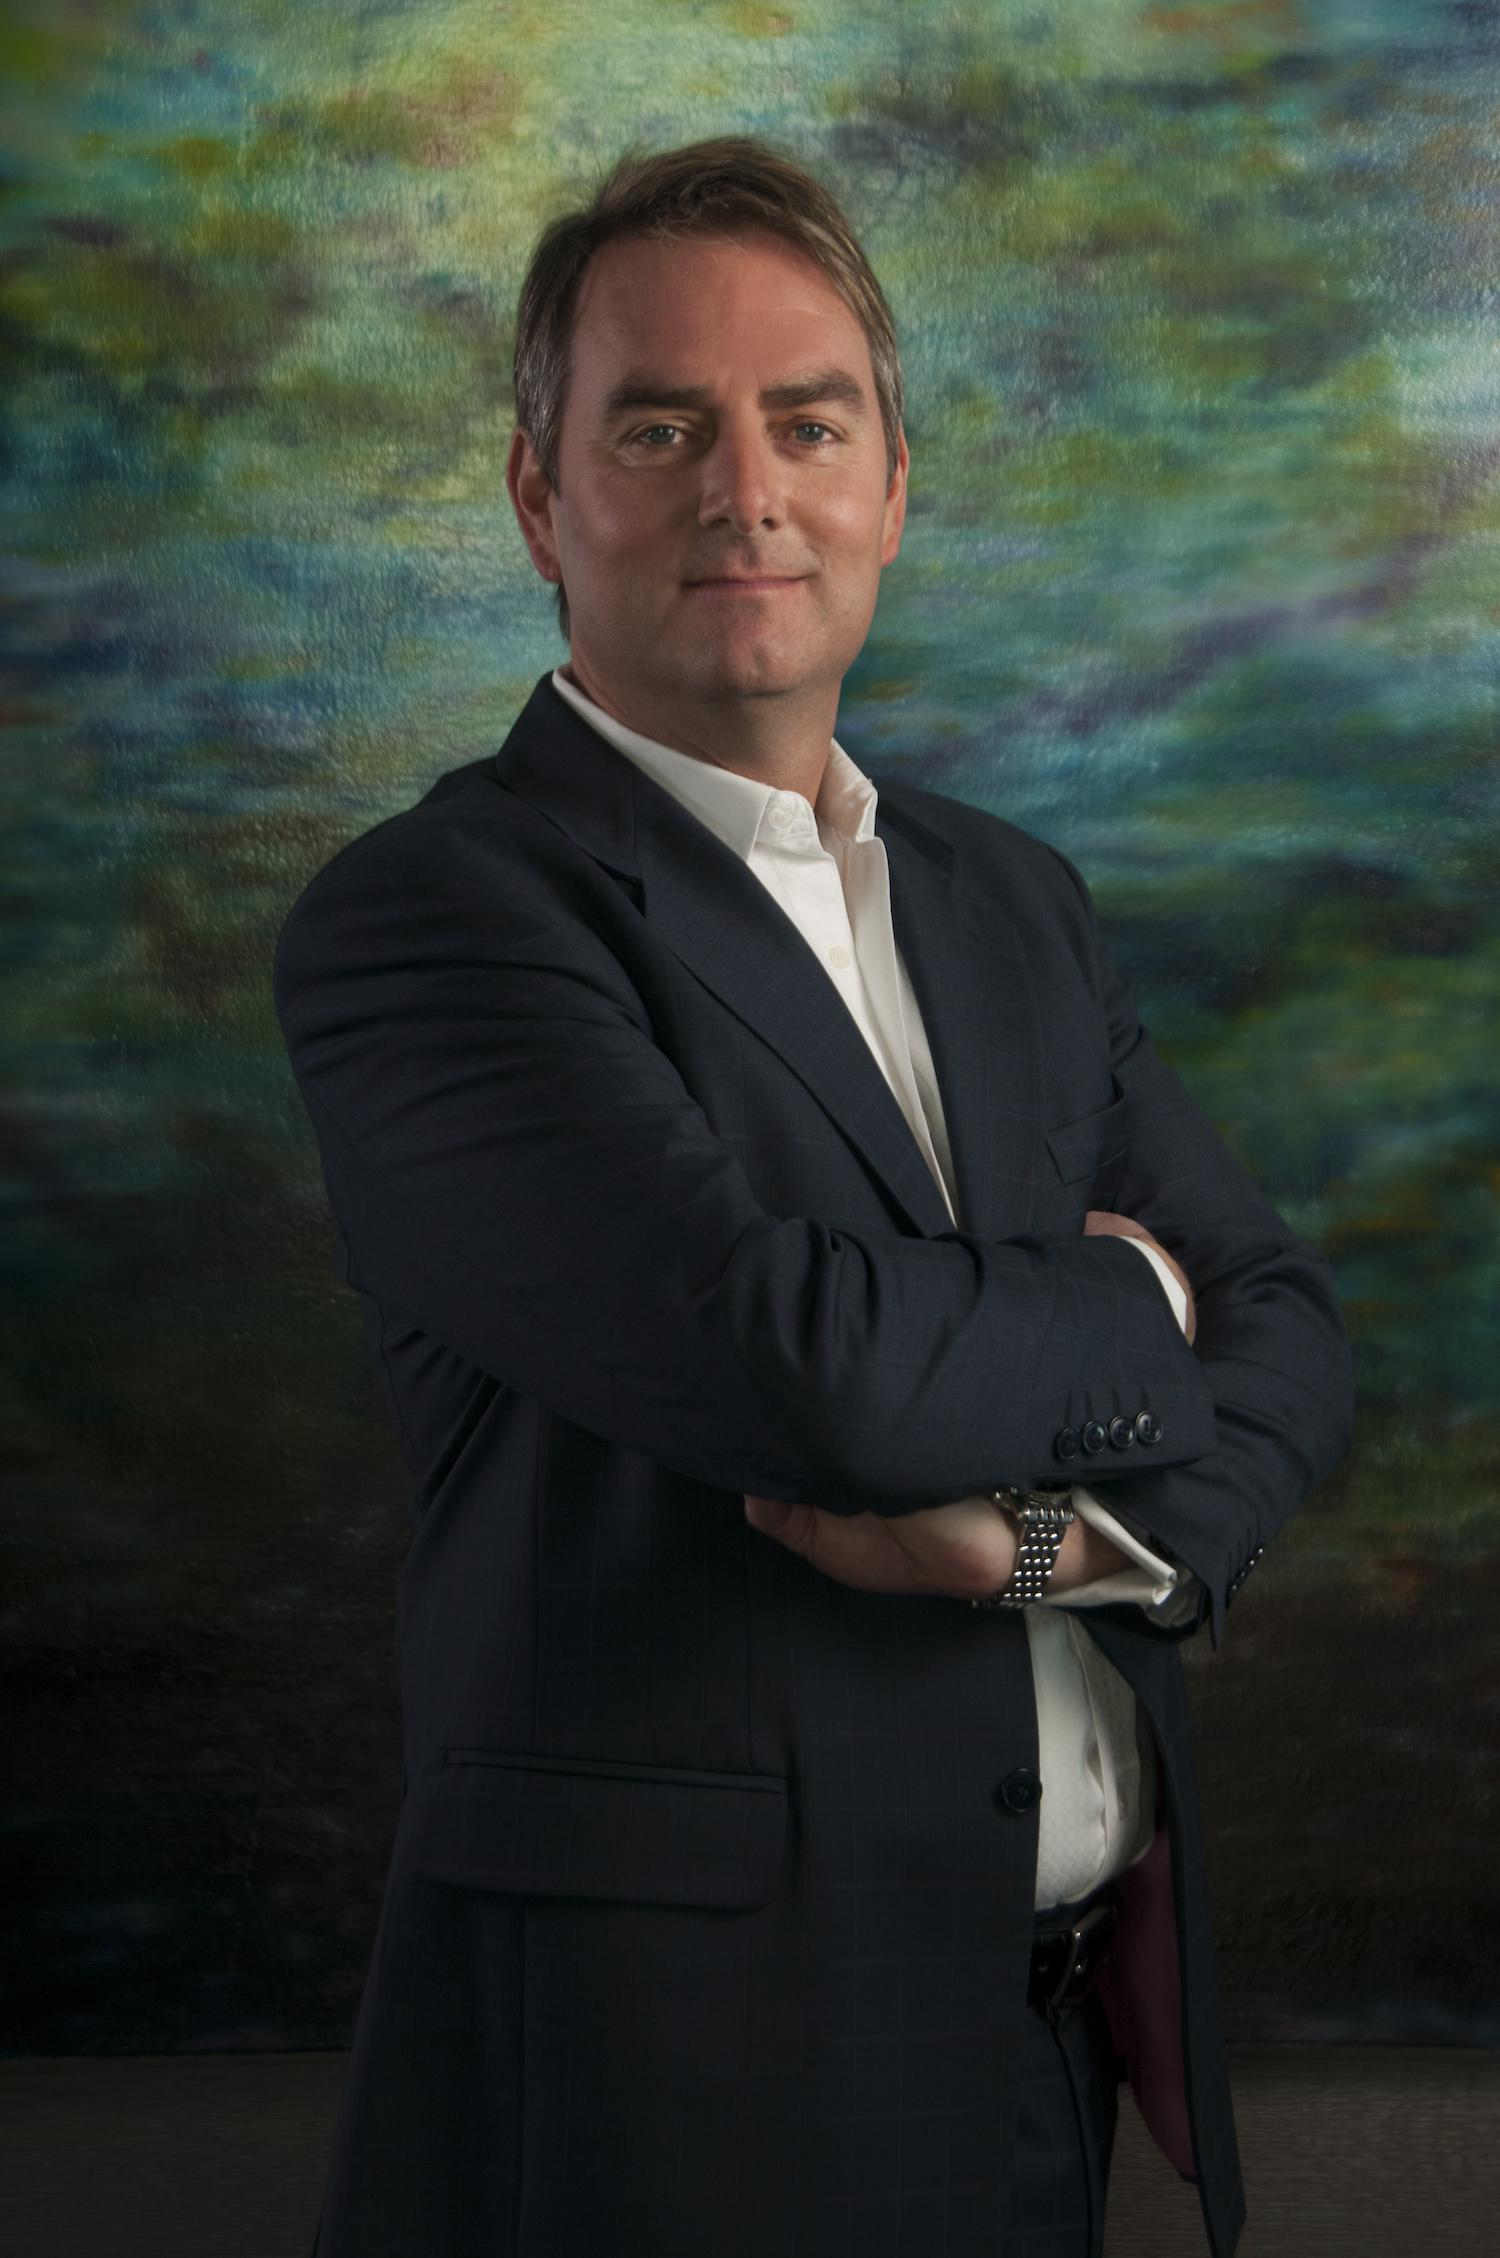 CostaFox Managing Director, Michael Fox